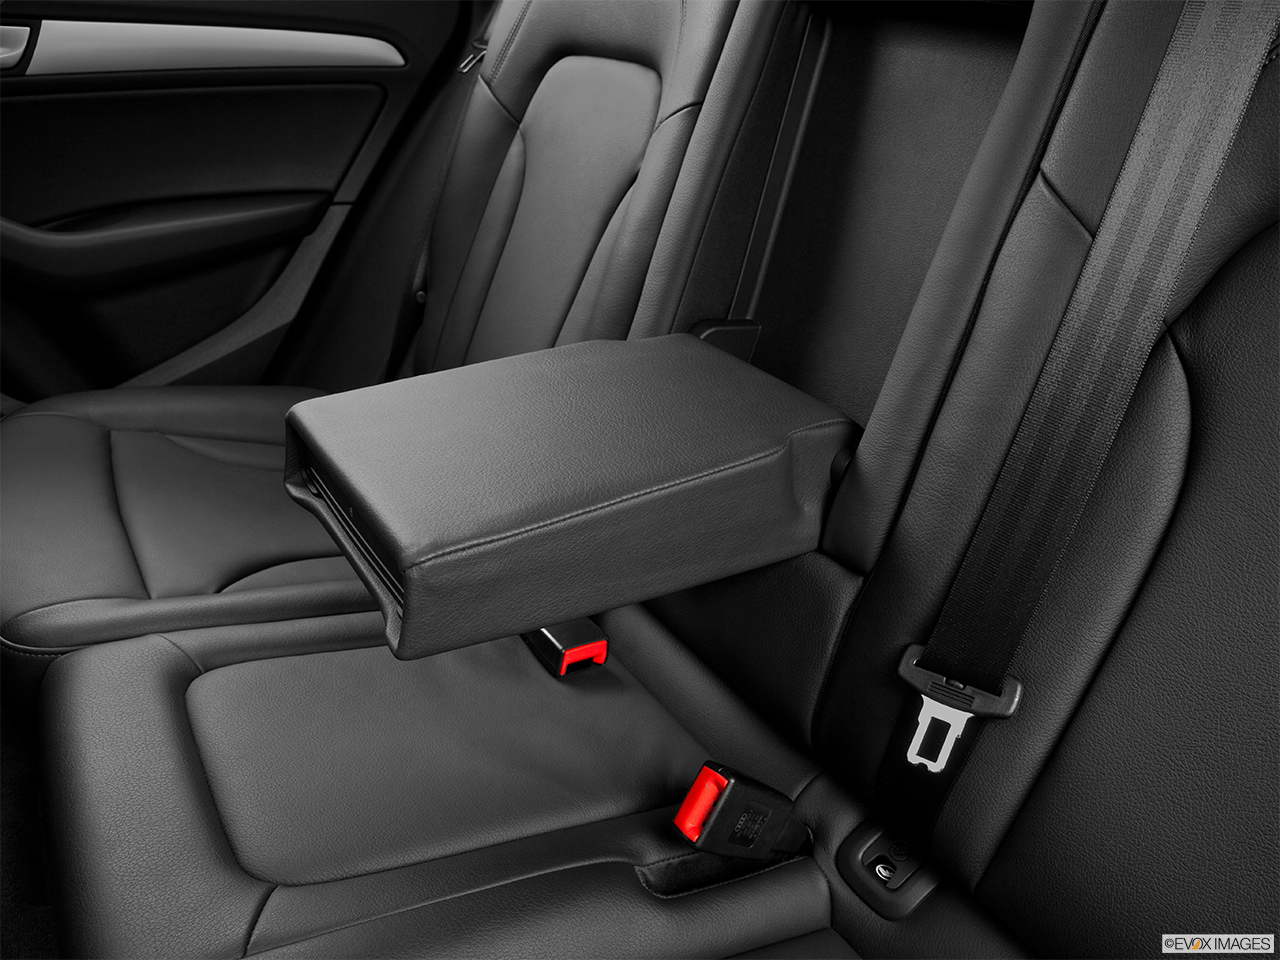 2014 Audi Q5 Hybrid 2.0 TFSI Prestige Rear center console with closed lid from driver's side looking down.